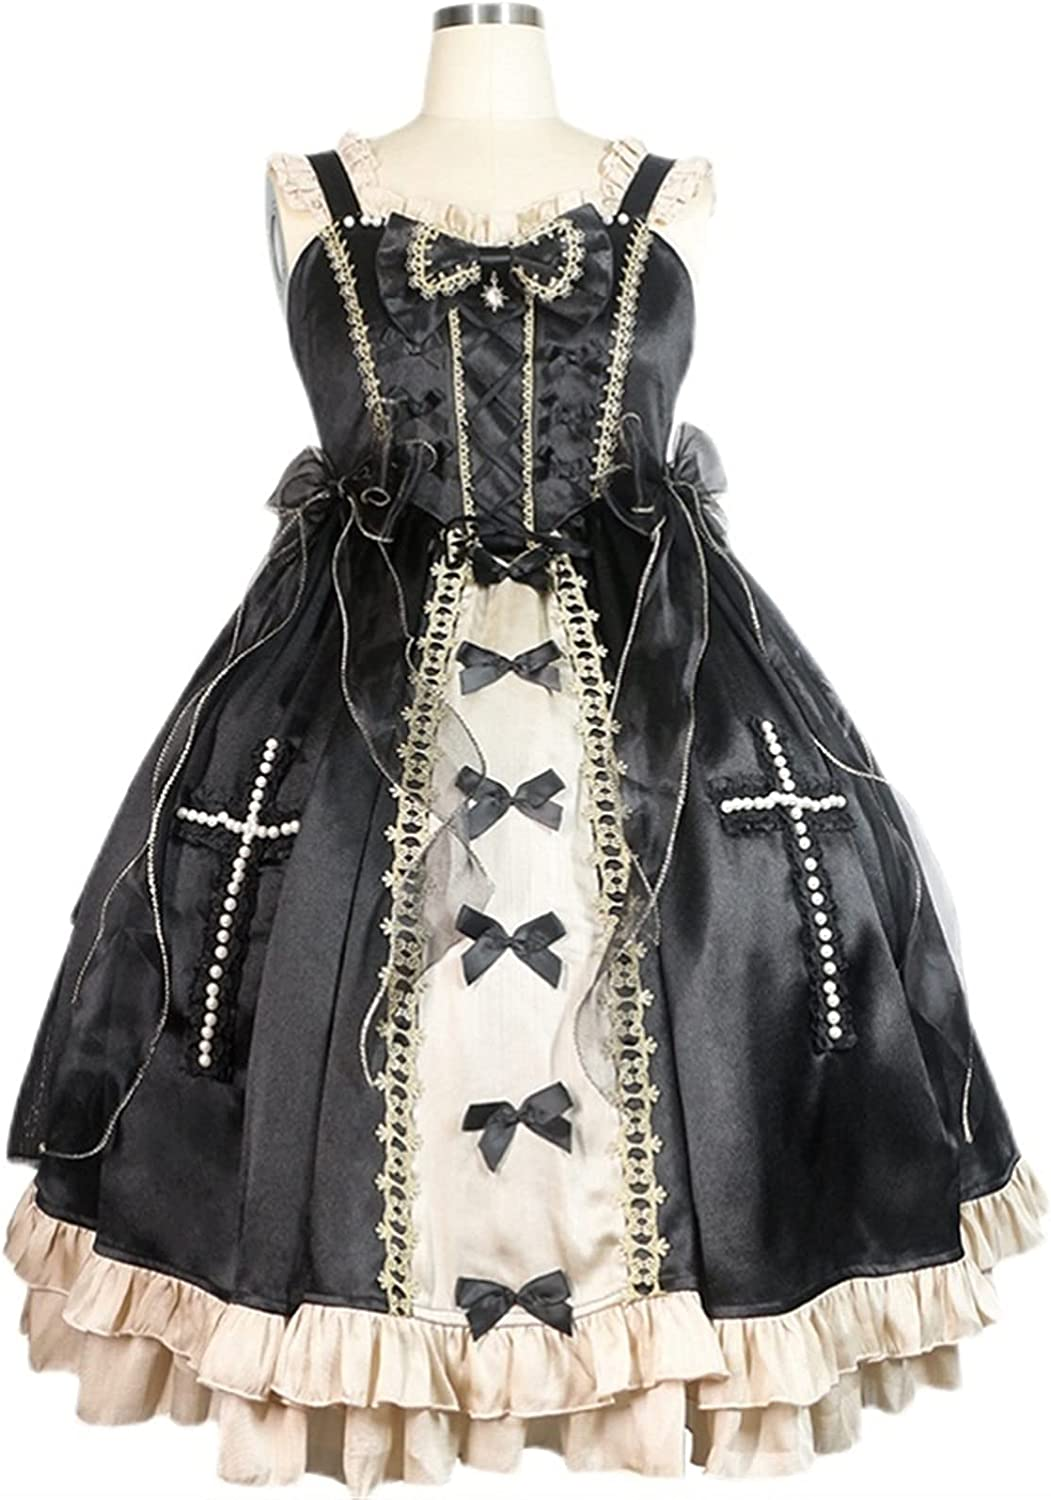 RSDZ New 5% OFF Classic Black Princess Skirts Challenge the lowest price of Japan ☆ Court Lace Costum Cosplay